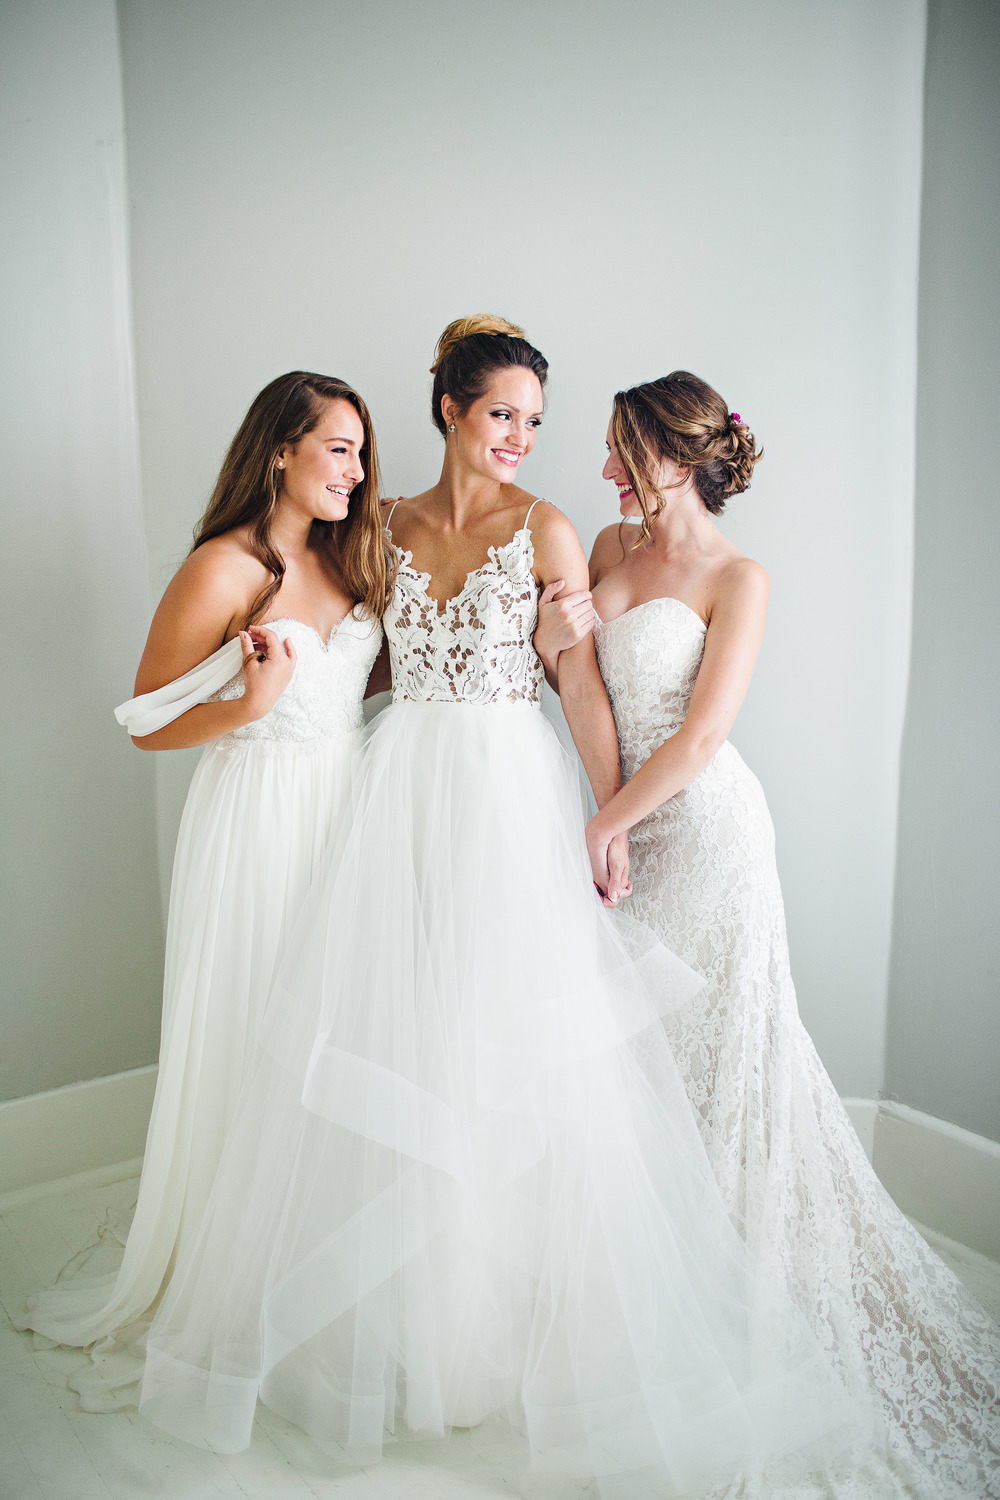 We just got back the images from our Bridal Lookbook 3.0 and we are so in love with the gorgeous images by  Izzy Hudgins Photography !!! The shoot features several of our newest gowns and was taken at  Studio Share Savannah . Cannot wait to share all the prettiness of this.  Dresses from left: Sarah Seven, Blush by Hayley Paige, Ti Adora all available now.